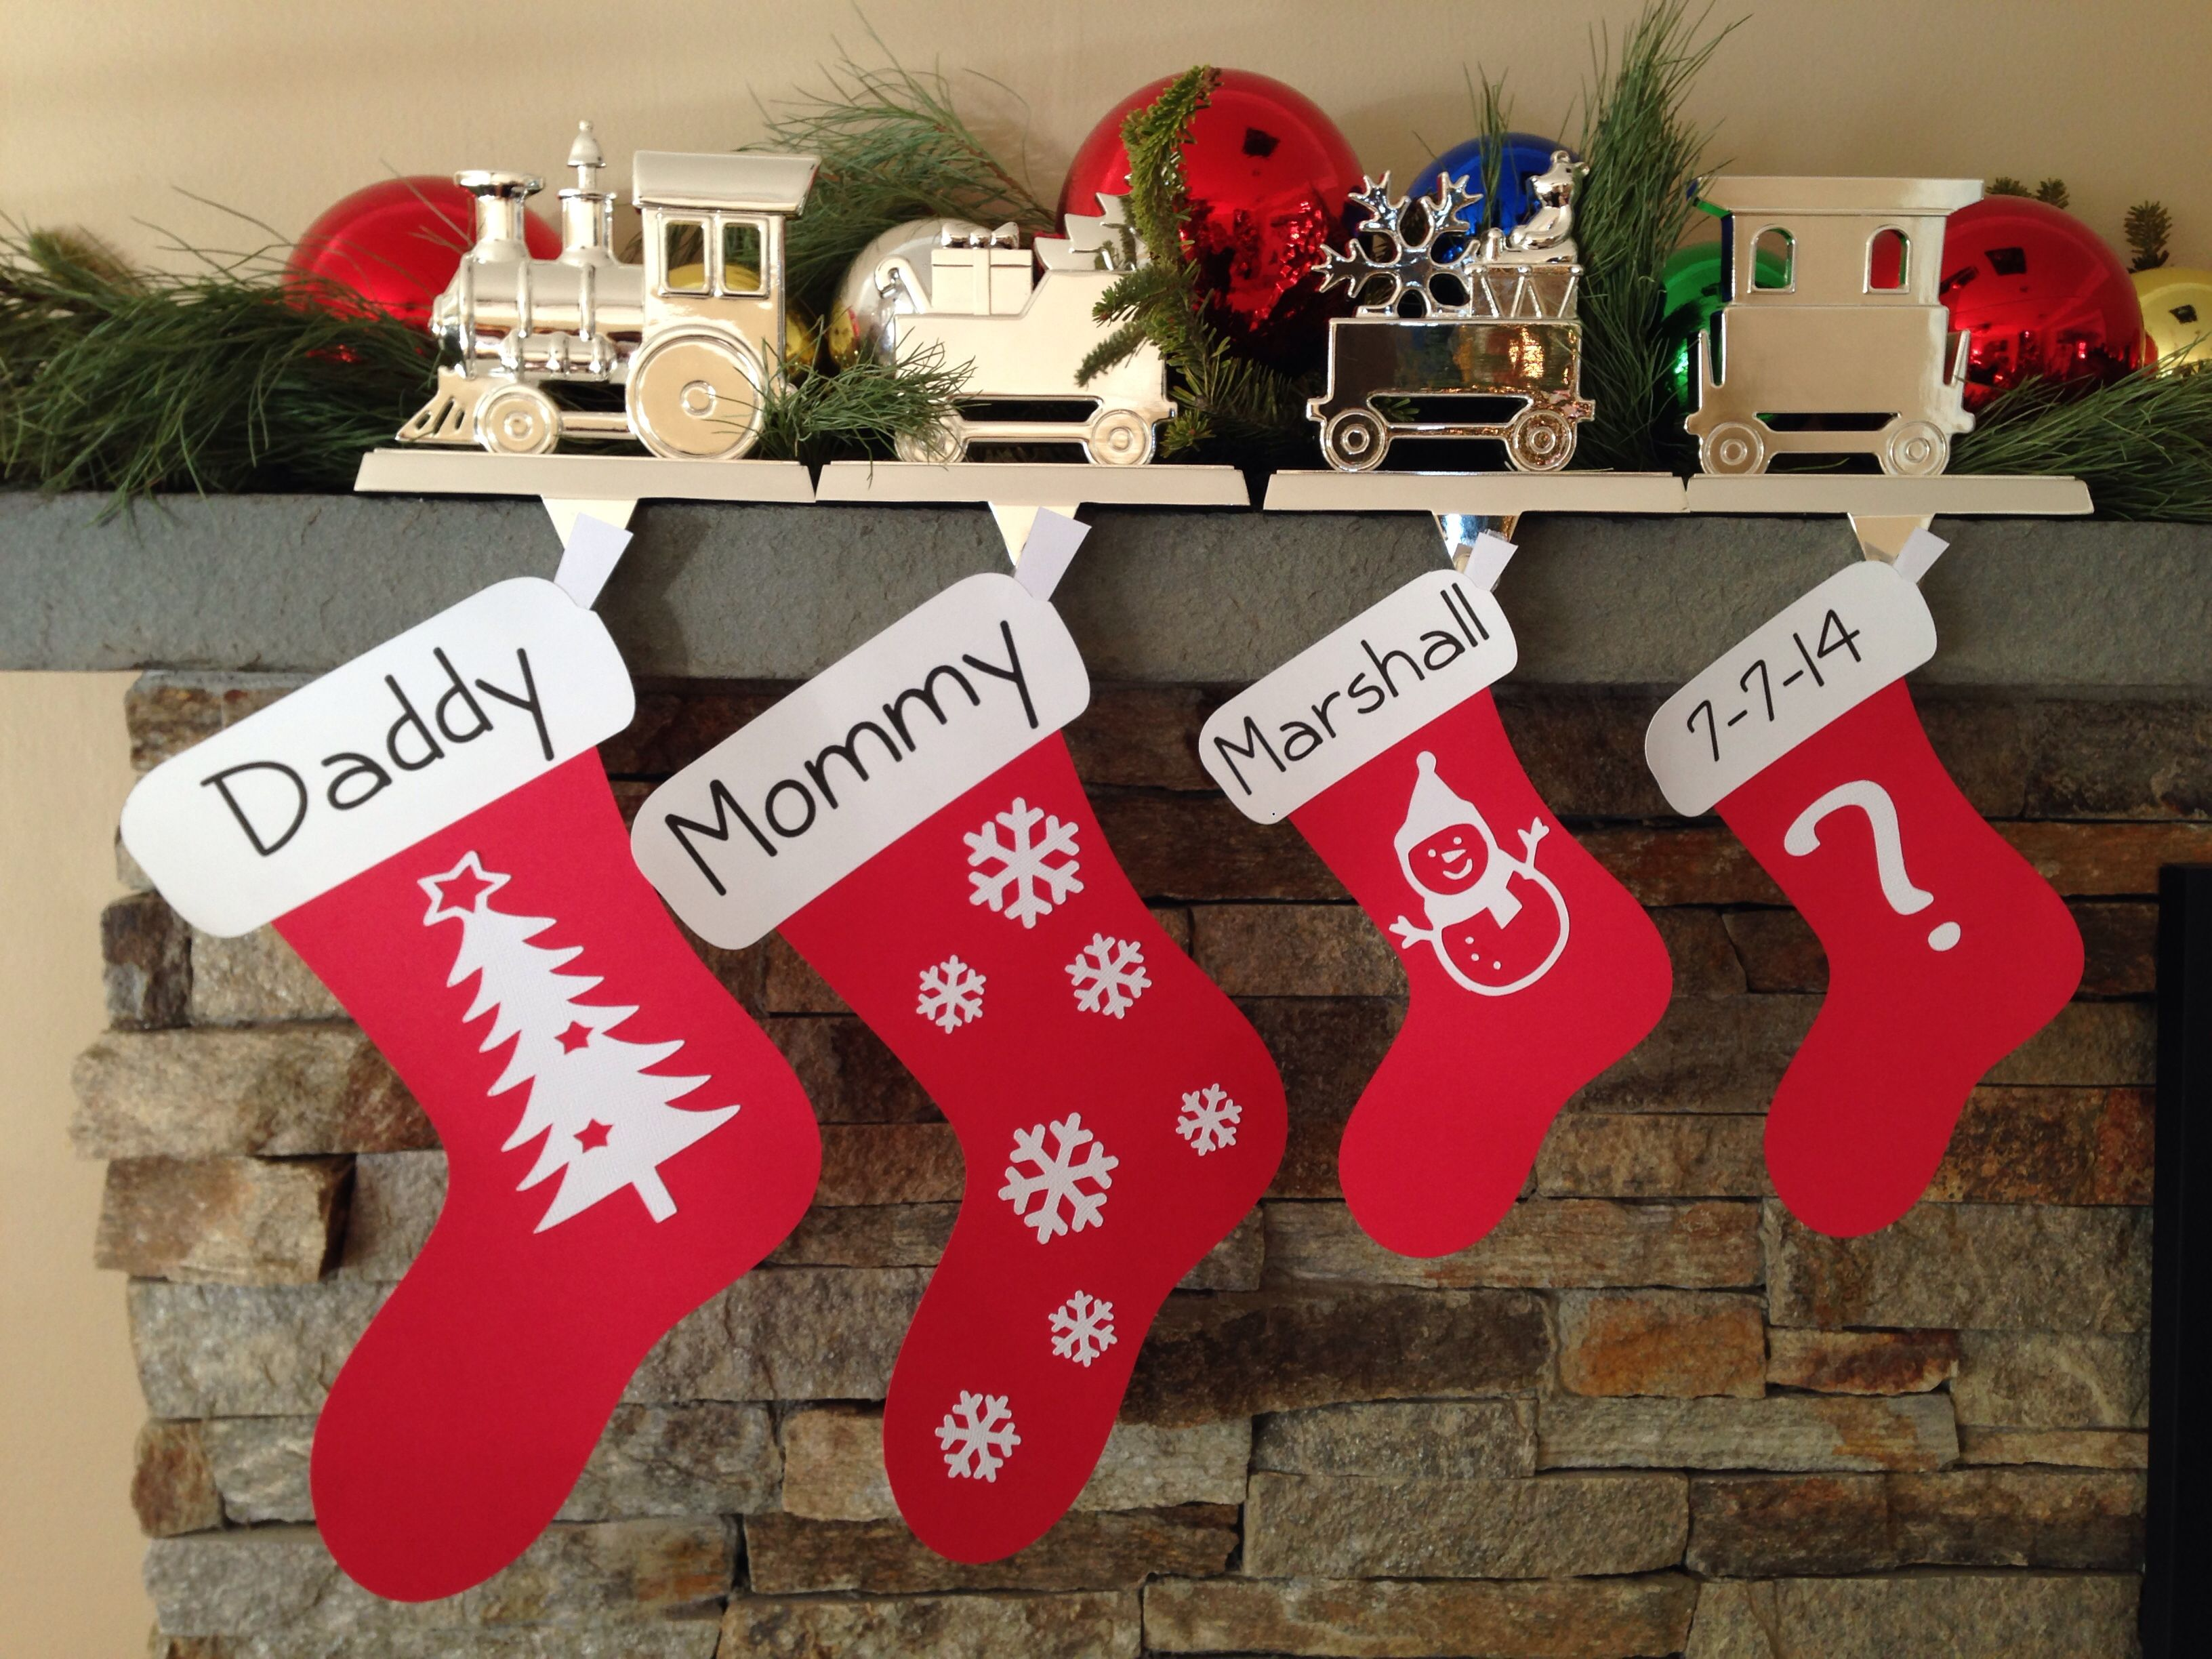 Christmas ornament expecting baby - Christmas Time Pregnancy Announcement With Card Stock Stockings